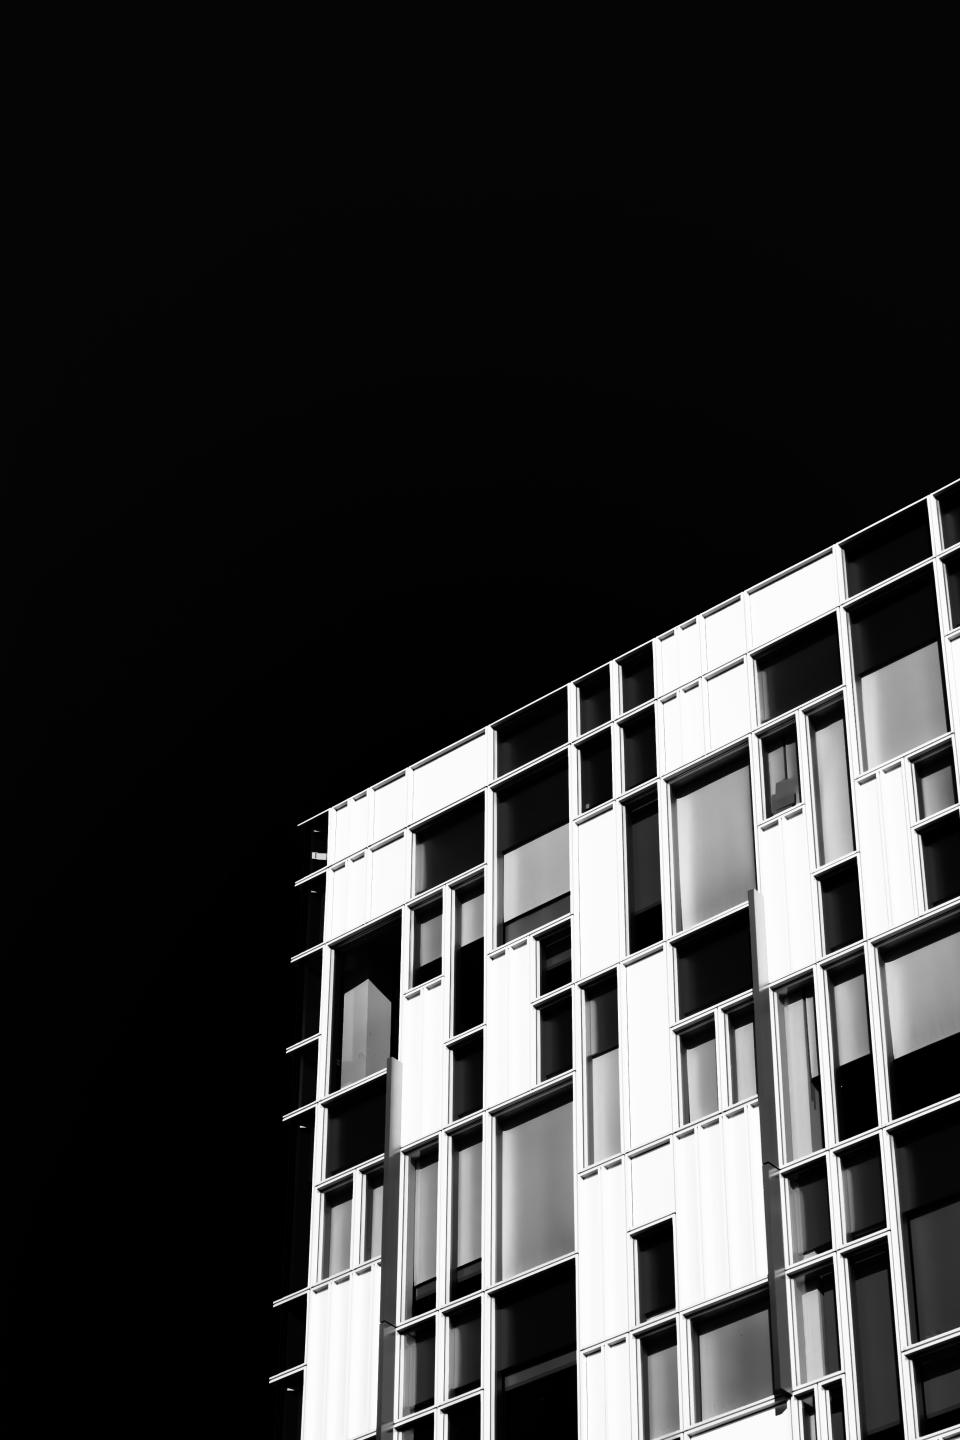 architecture building infrastructure black and white skyscraper tower